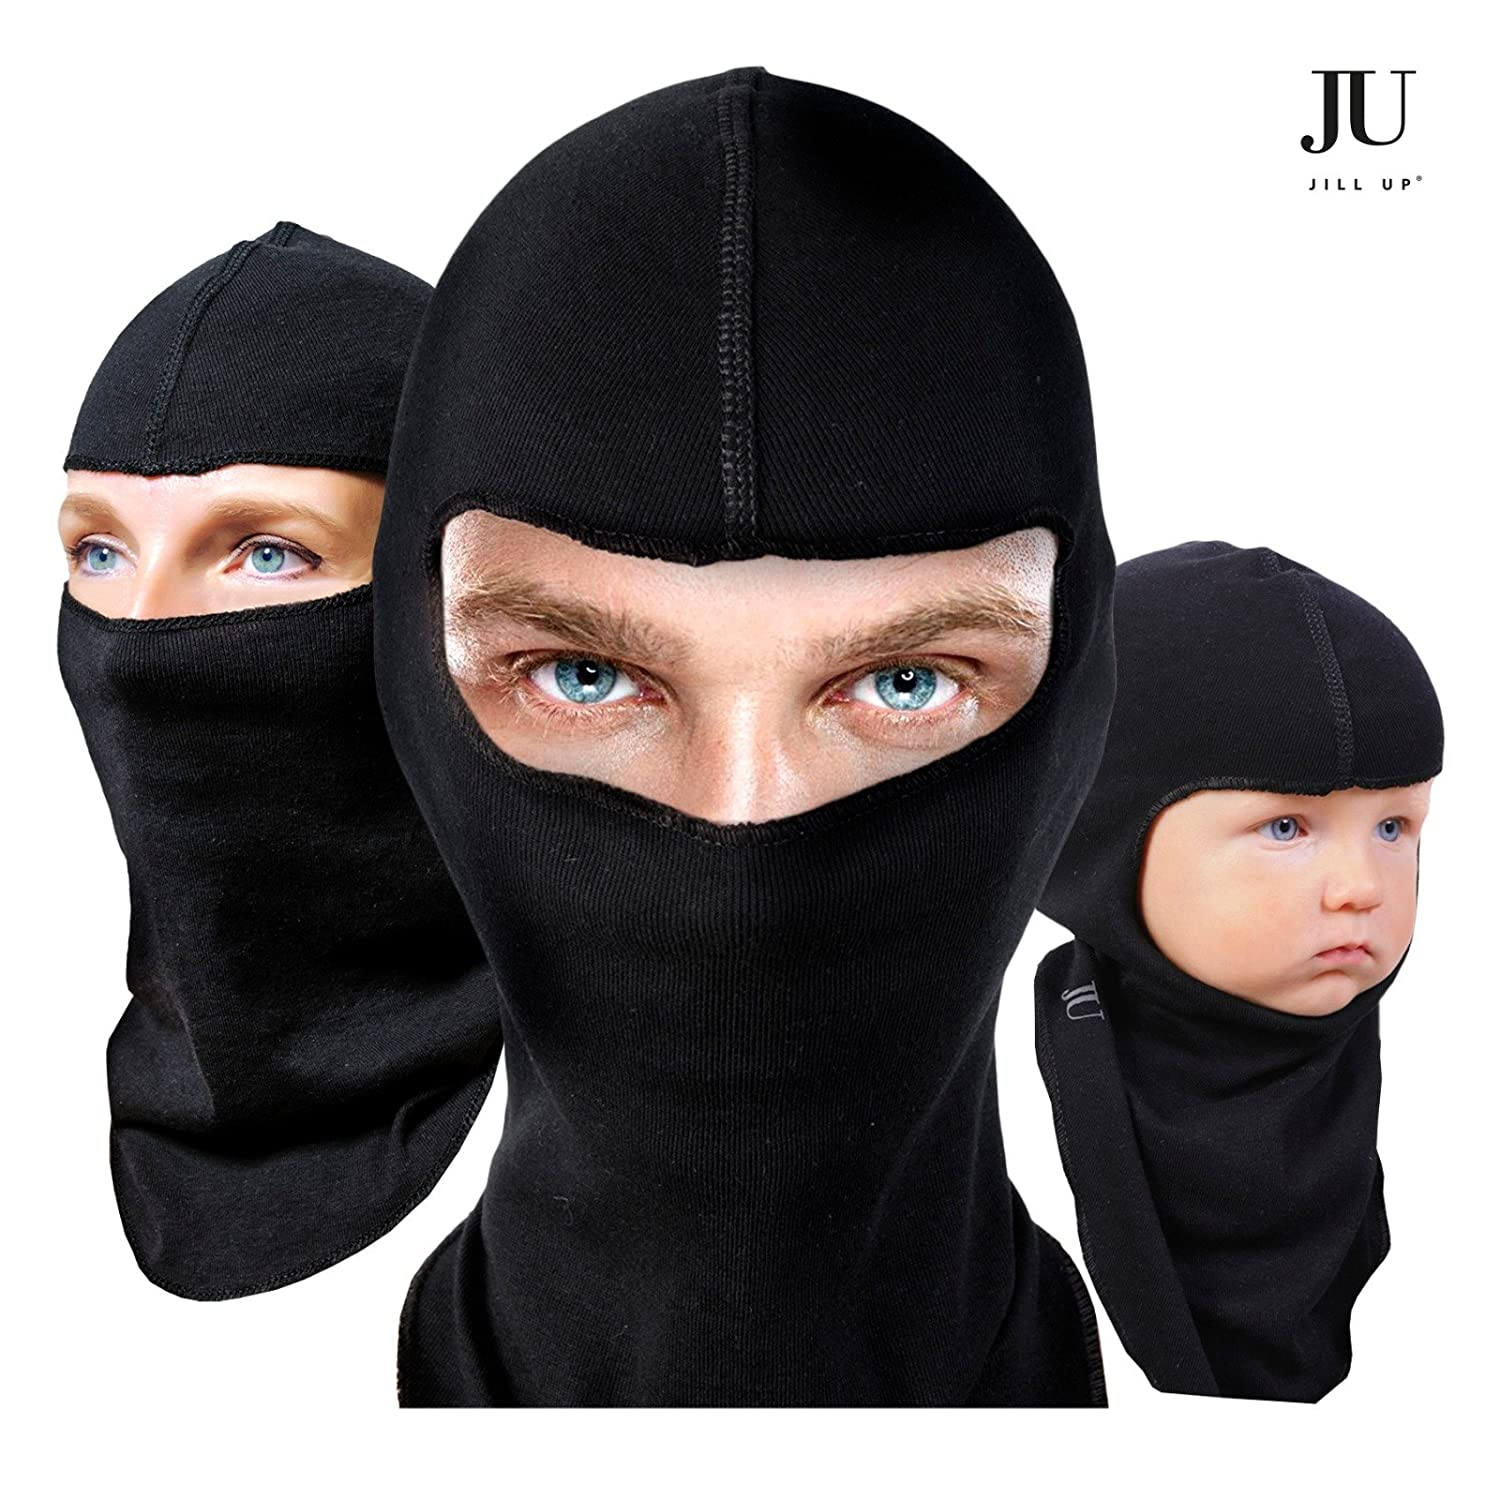 Full face mask neck warmer hood balaclava outdoor winter sports hats - Amazon Com 2 Pack Multipurpose Balaclava Full Face Ski Mask Regular Winter Protection Best Cold Weather Gear For Your Outdoor Work Sports